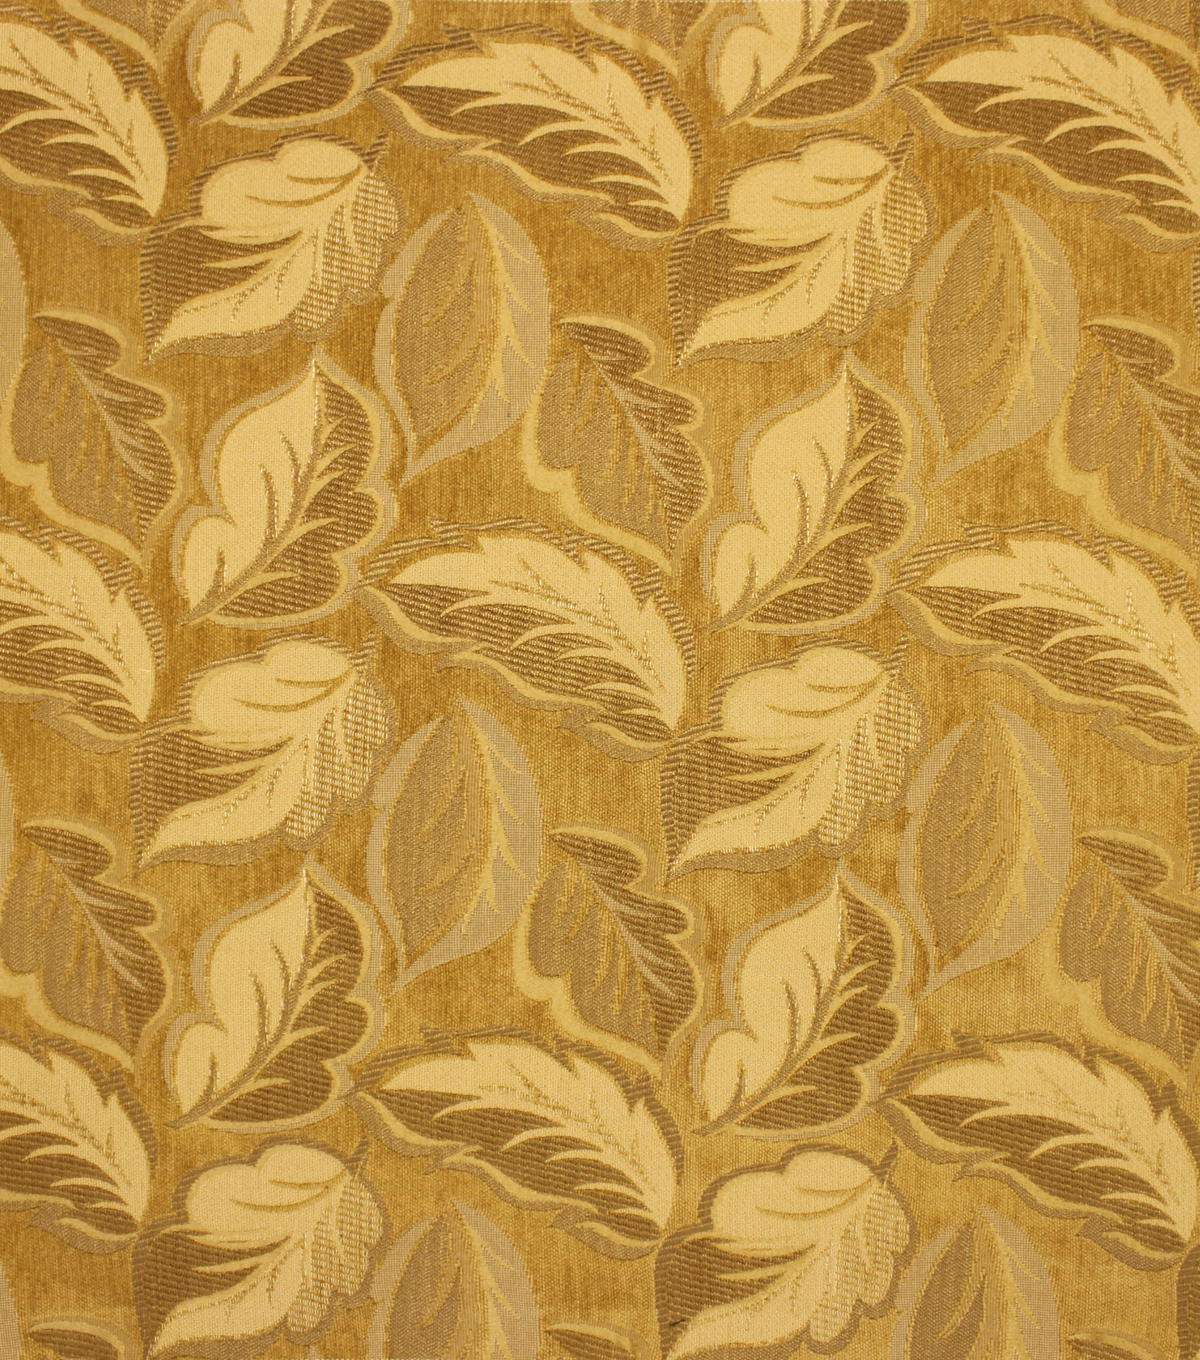 Home Decor 8\u0022x8\u0022 Fabric Swatch-Upholstery Fabric Barrow M8744-5182 Sand